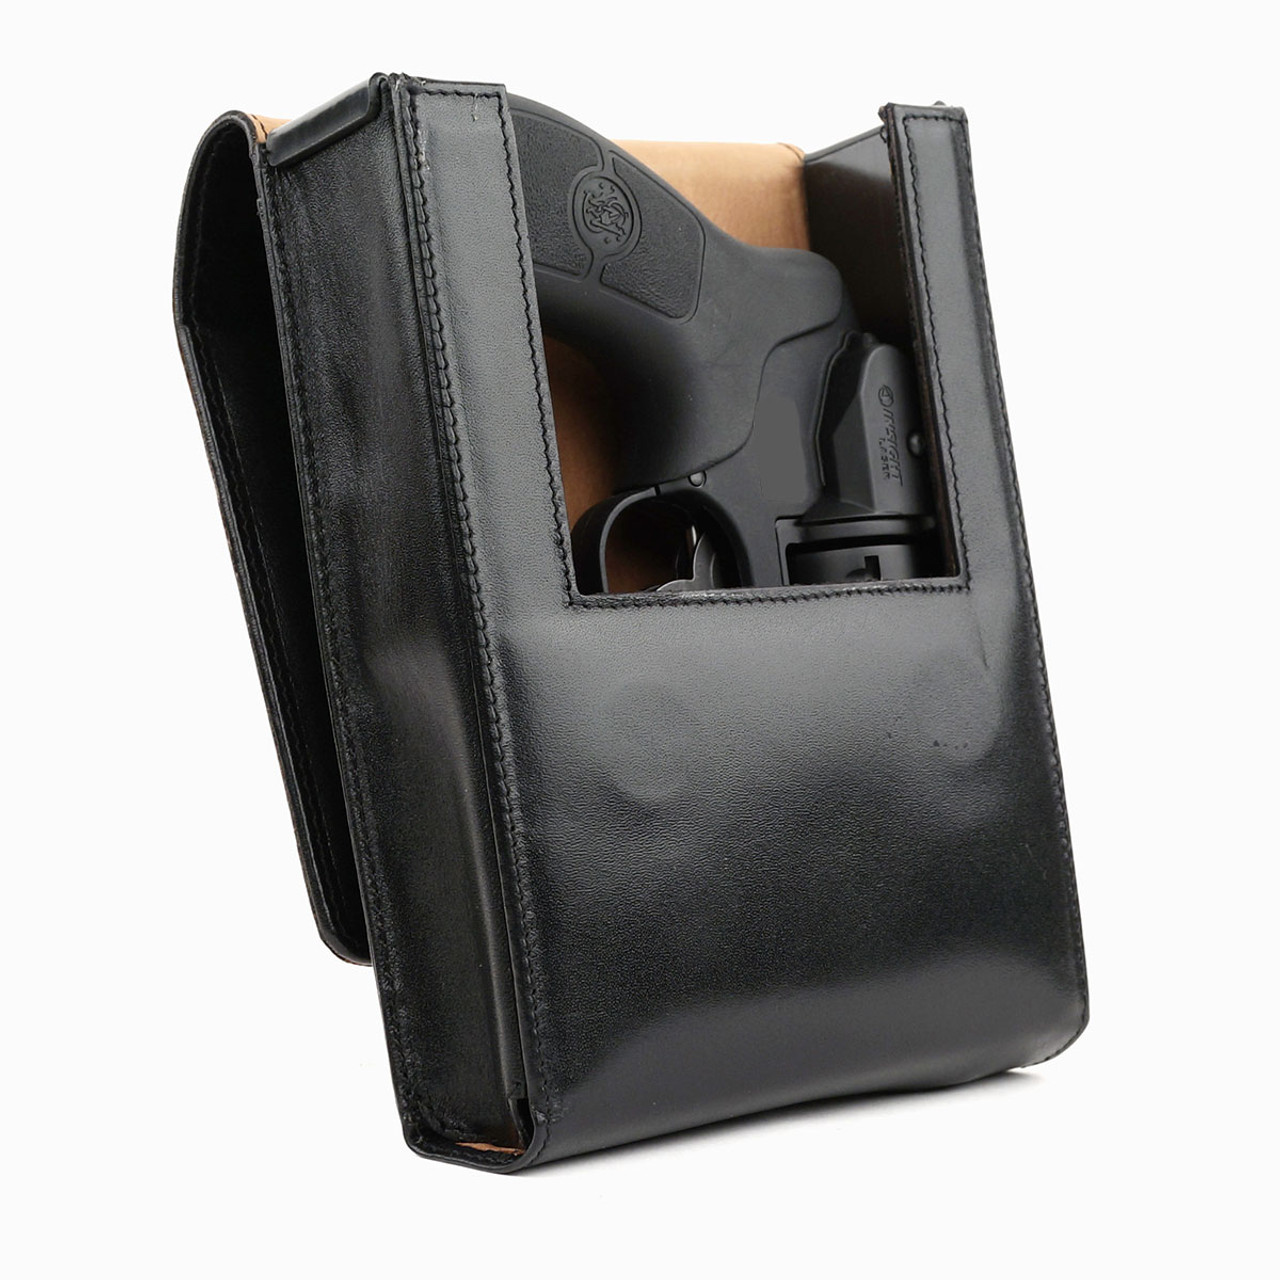 Bodyguard .38 Special Holster